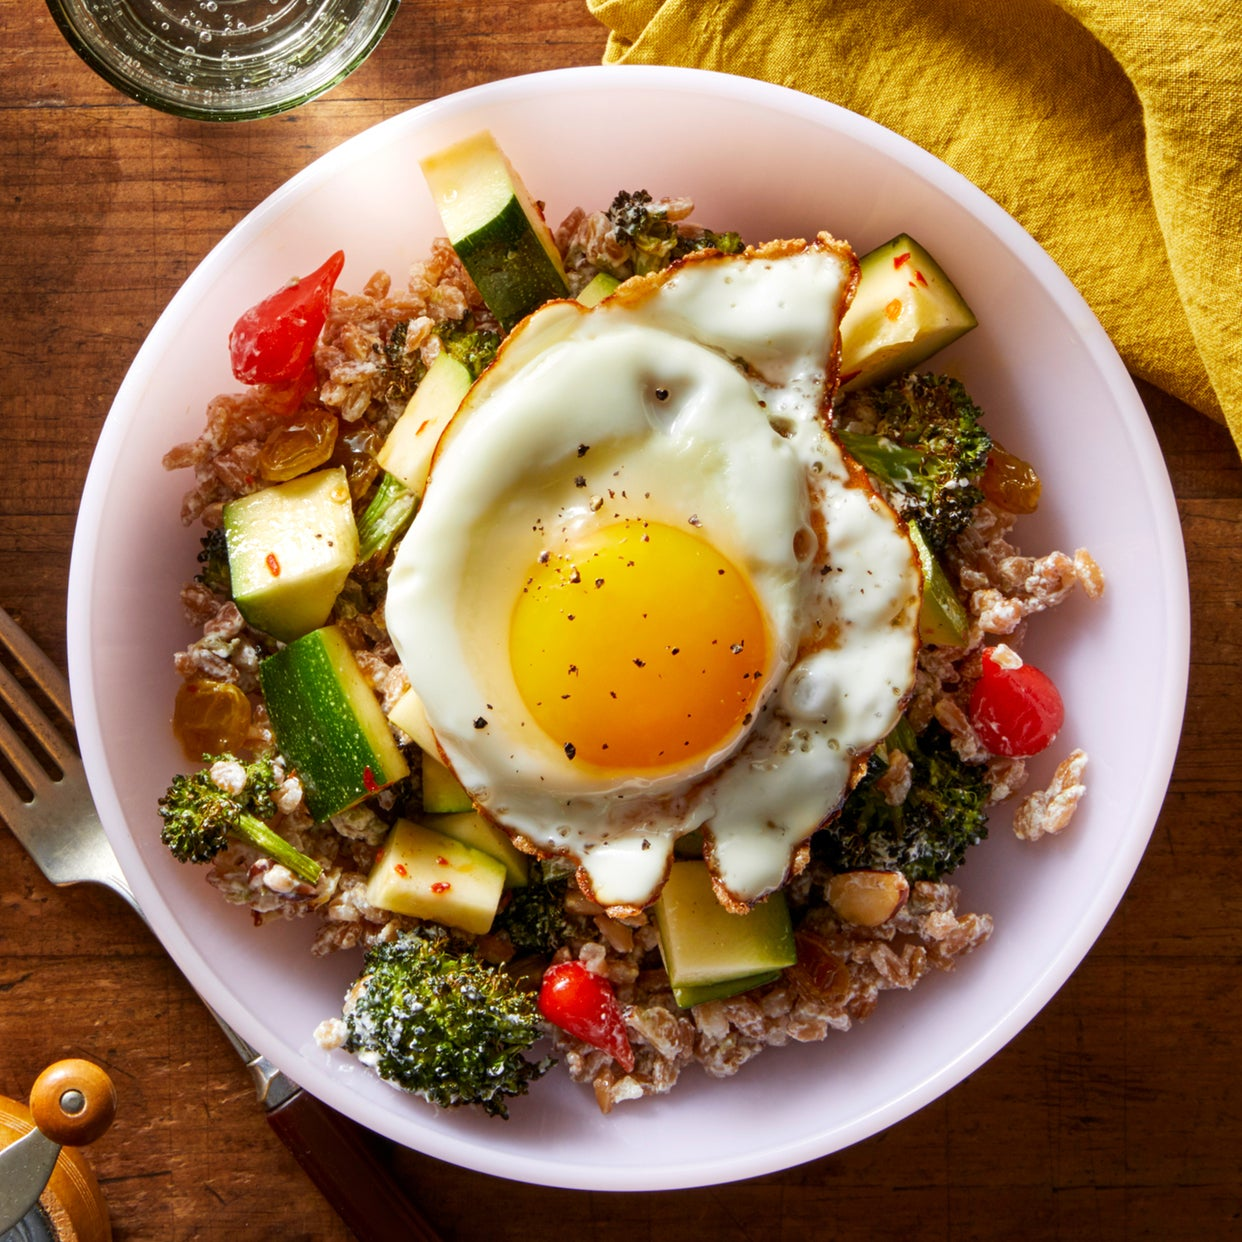 Roasted Broccoli & Farro Salad with Pickled Peppers & Marinated Zucchini